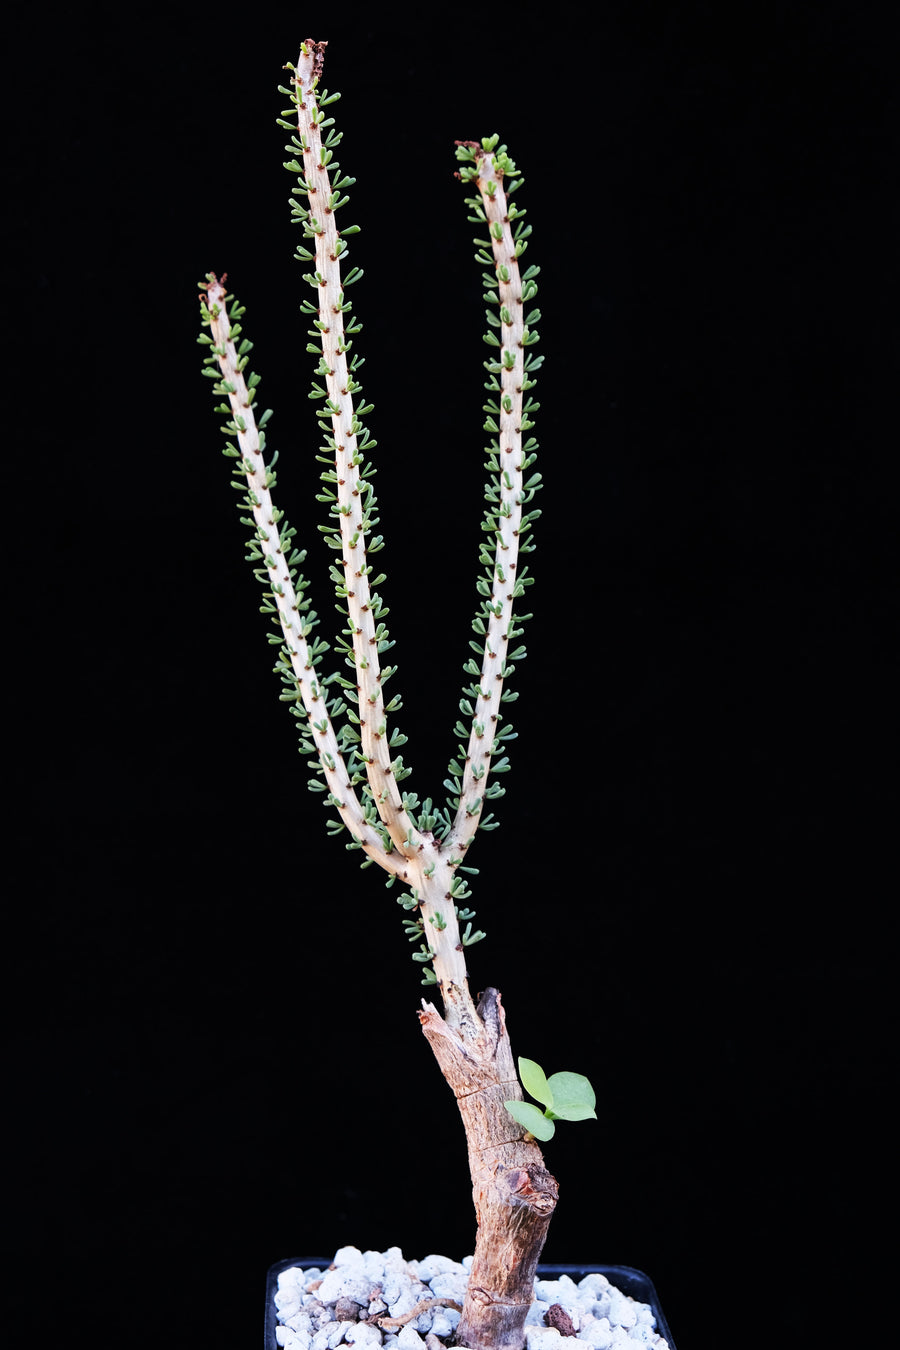 Ceraria namaquensis (graft)